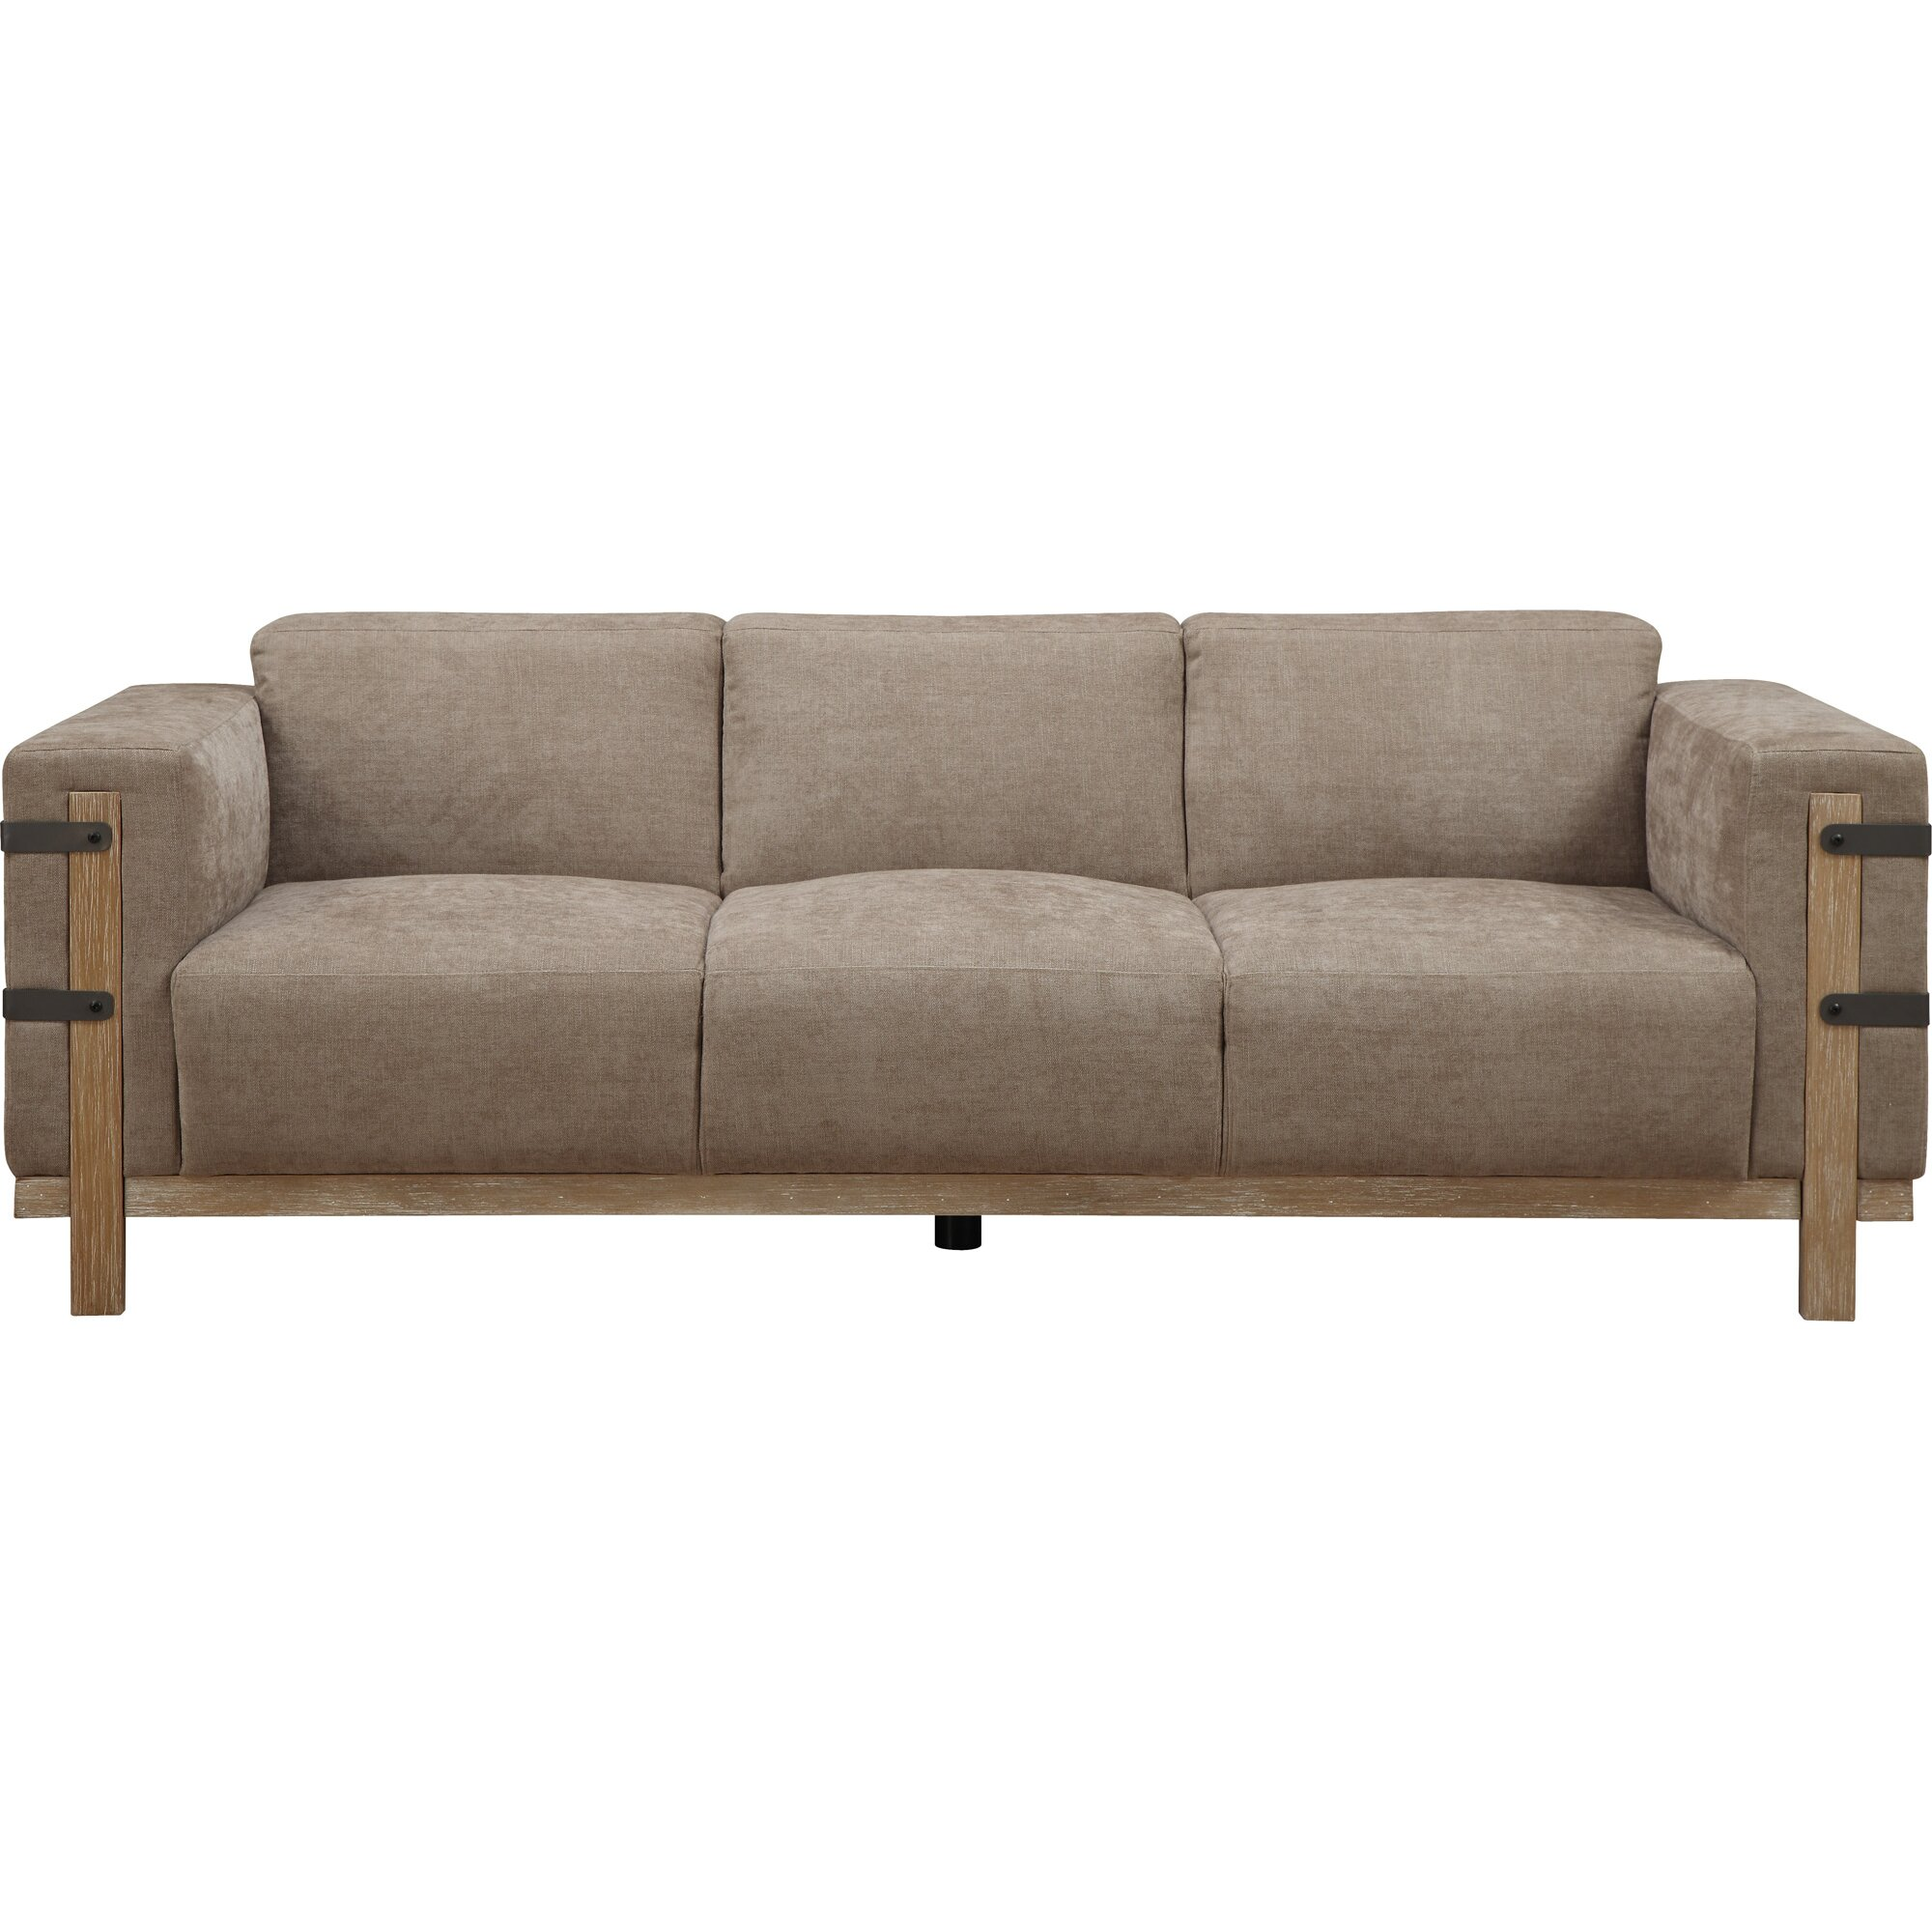 Atwood Sofa By Gus Modern Direct Furniture Modern Sofas